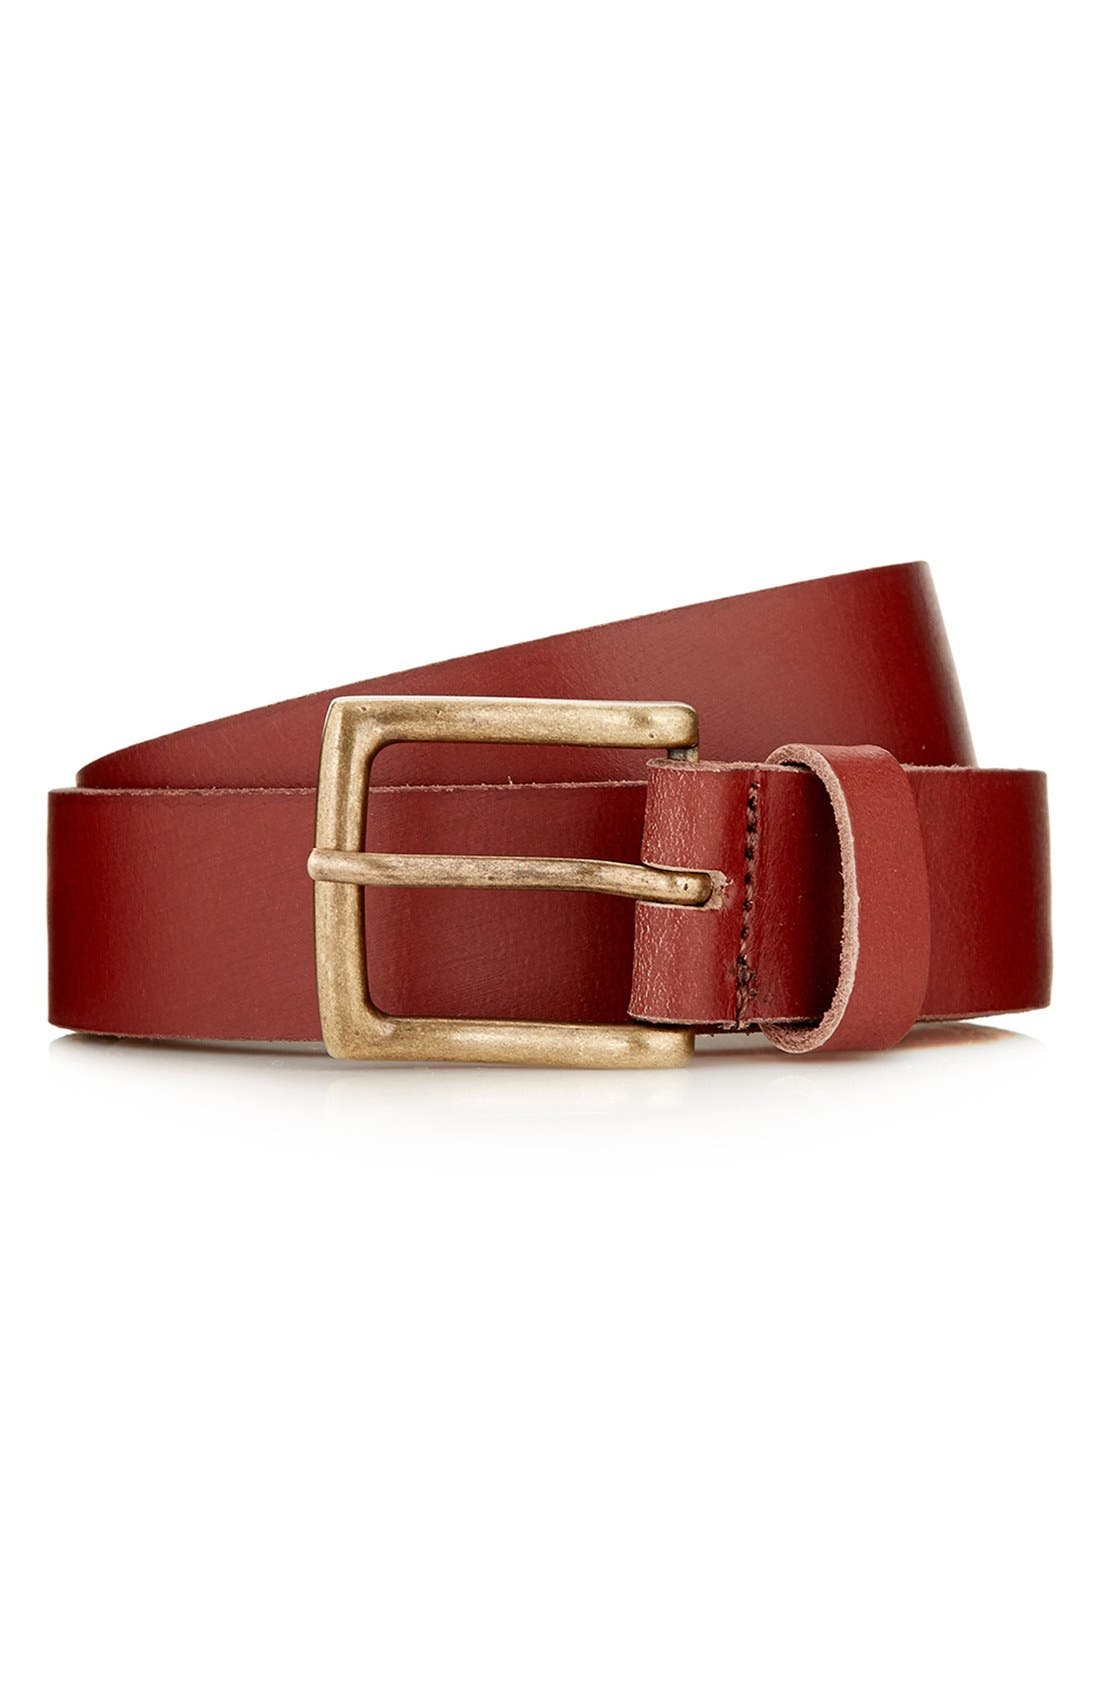 Alternate Image 1 Selected - Topman Brown Leather Belt